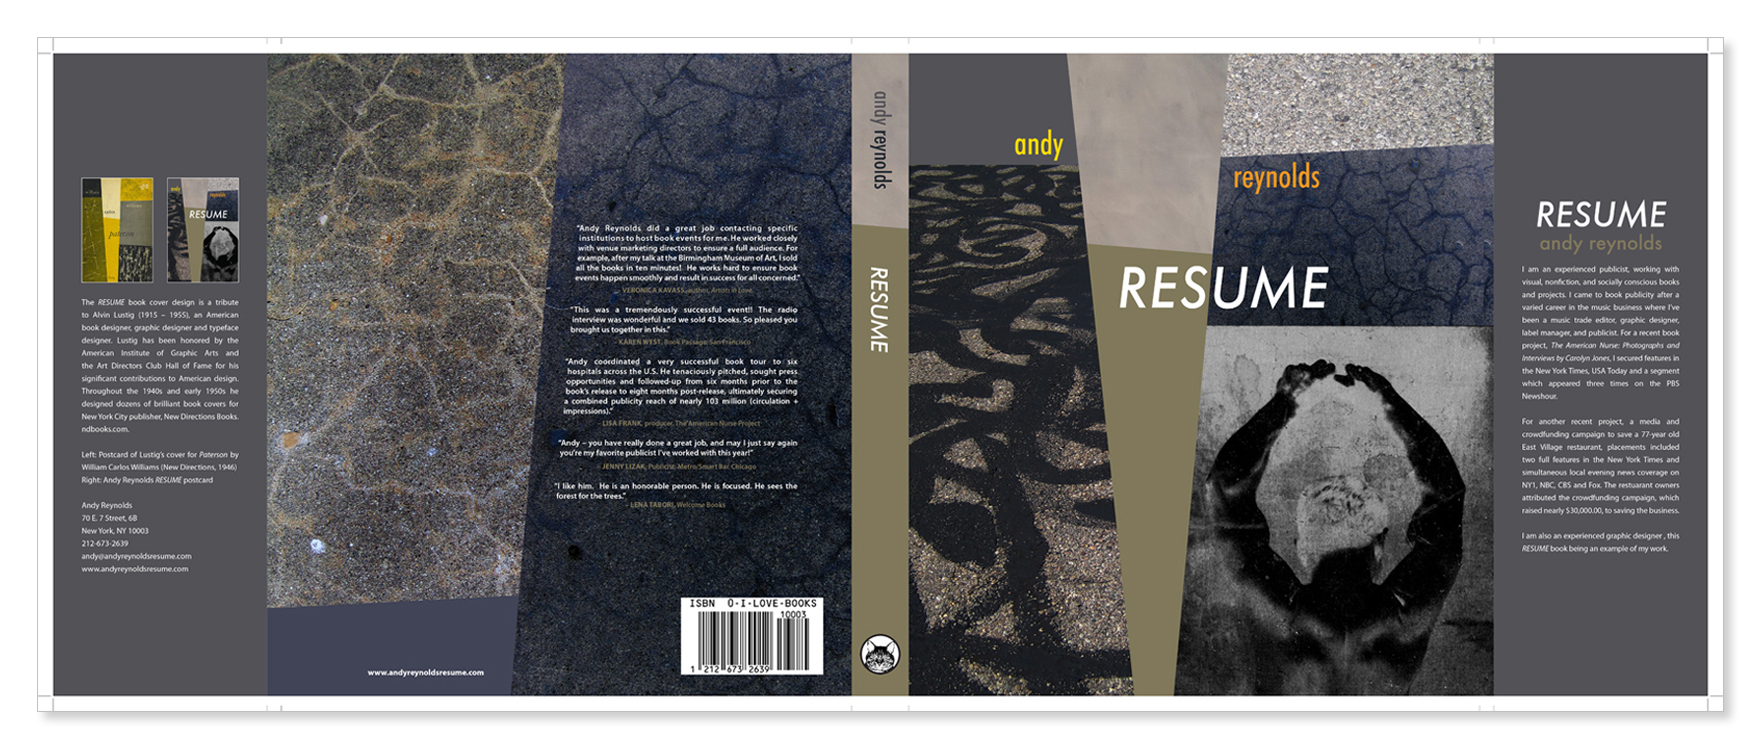 book cover resume as coffee table book andy reynolds graphic resume book jacket layout